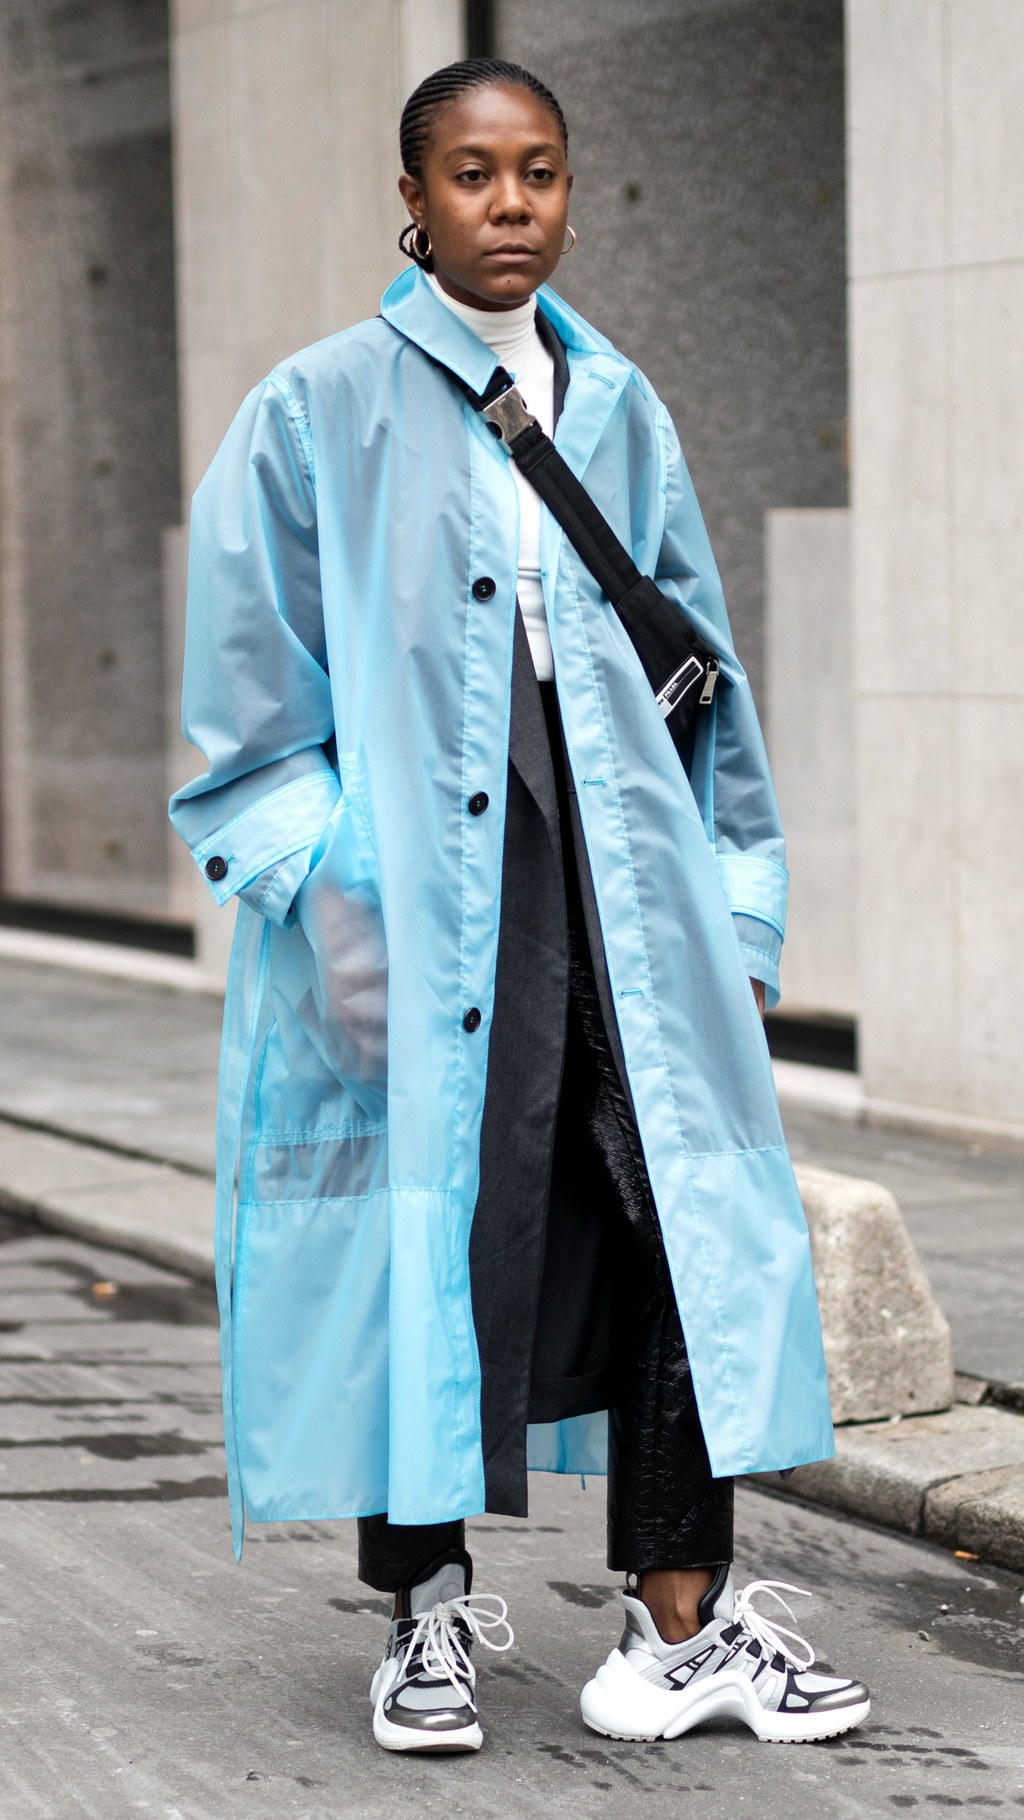 pfwg blue raincoat.jpg